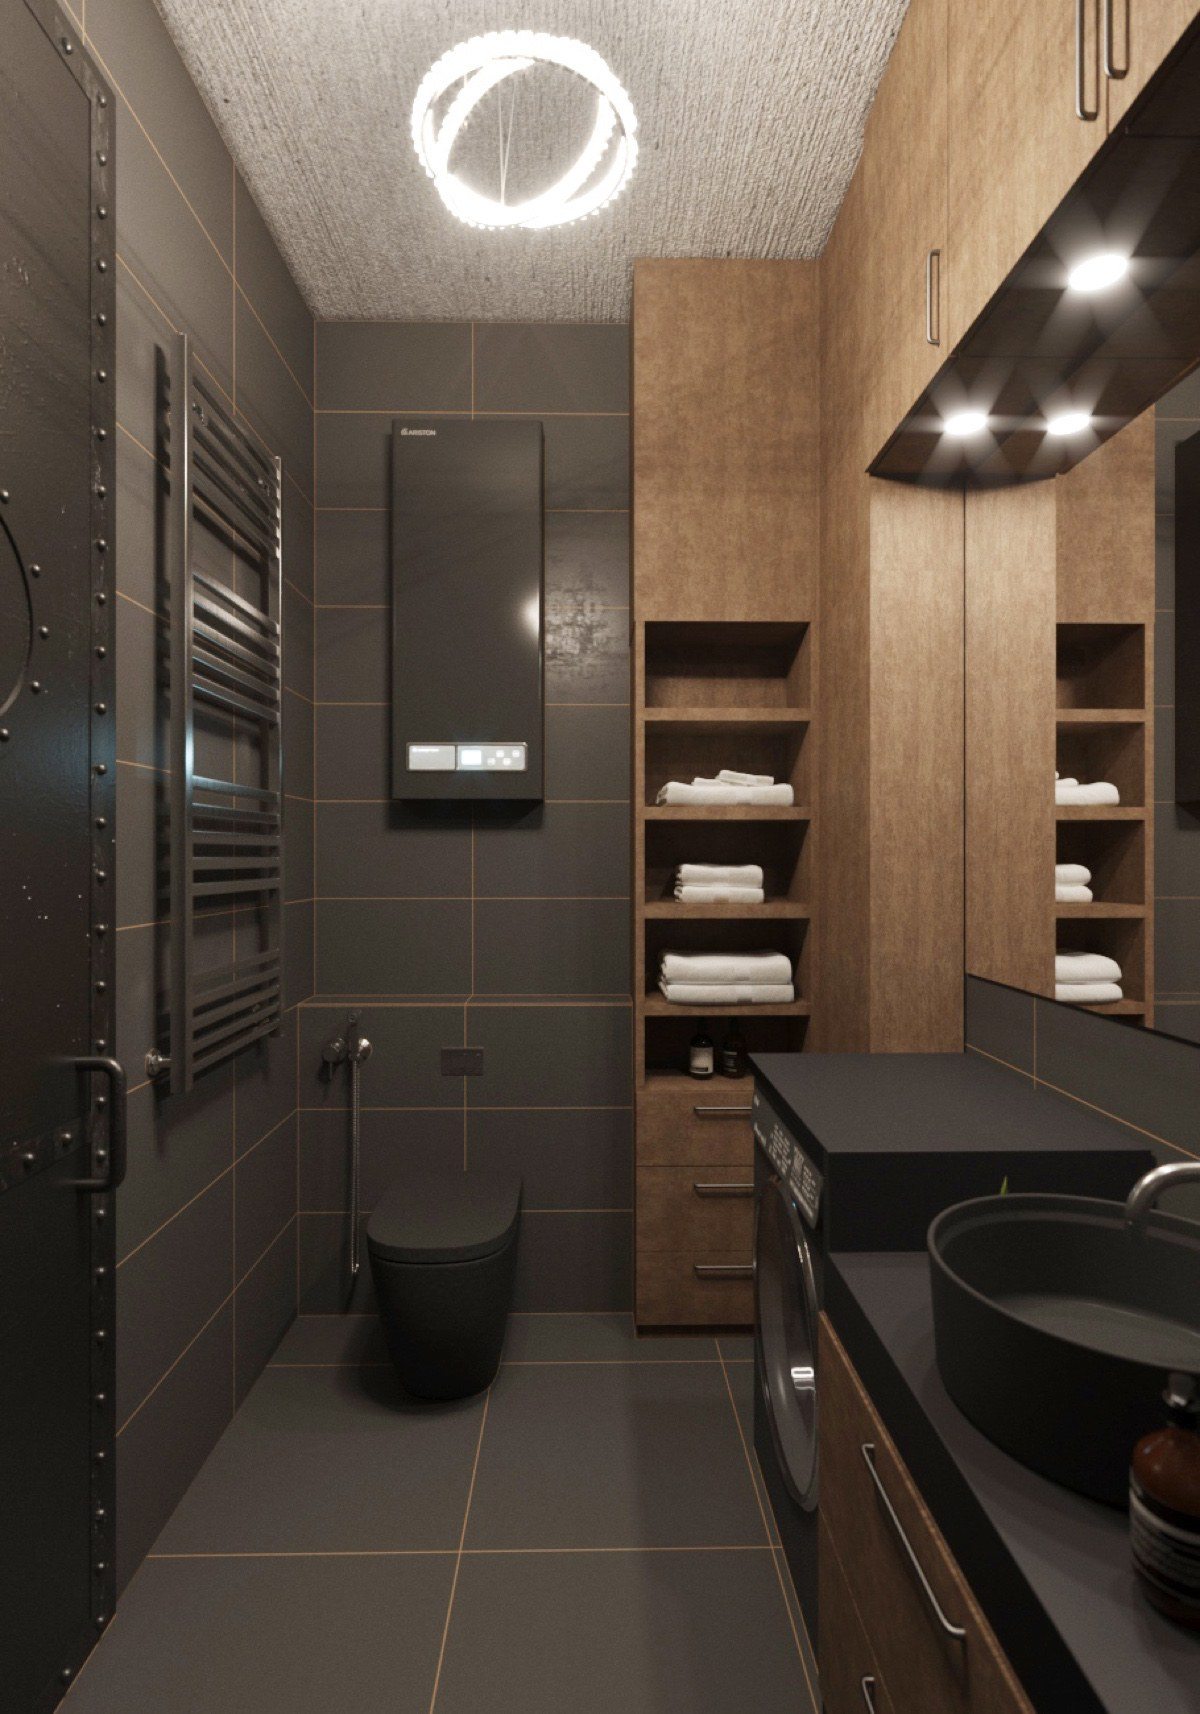 Chic Small Studio Apartment Use a Space Splendidly To Make ... on Small Apartment Bathroom Ideas  id=57600